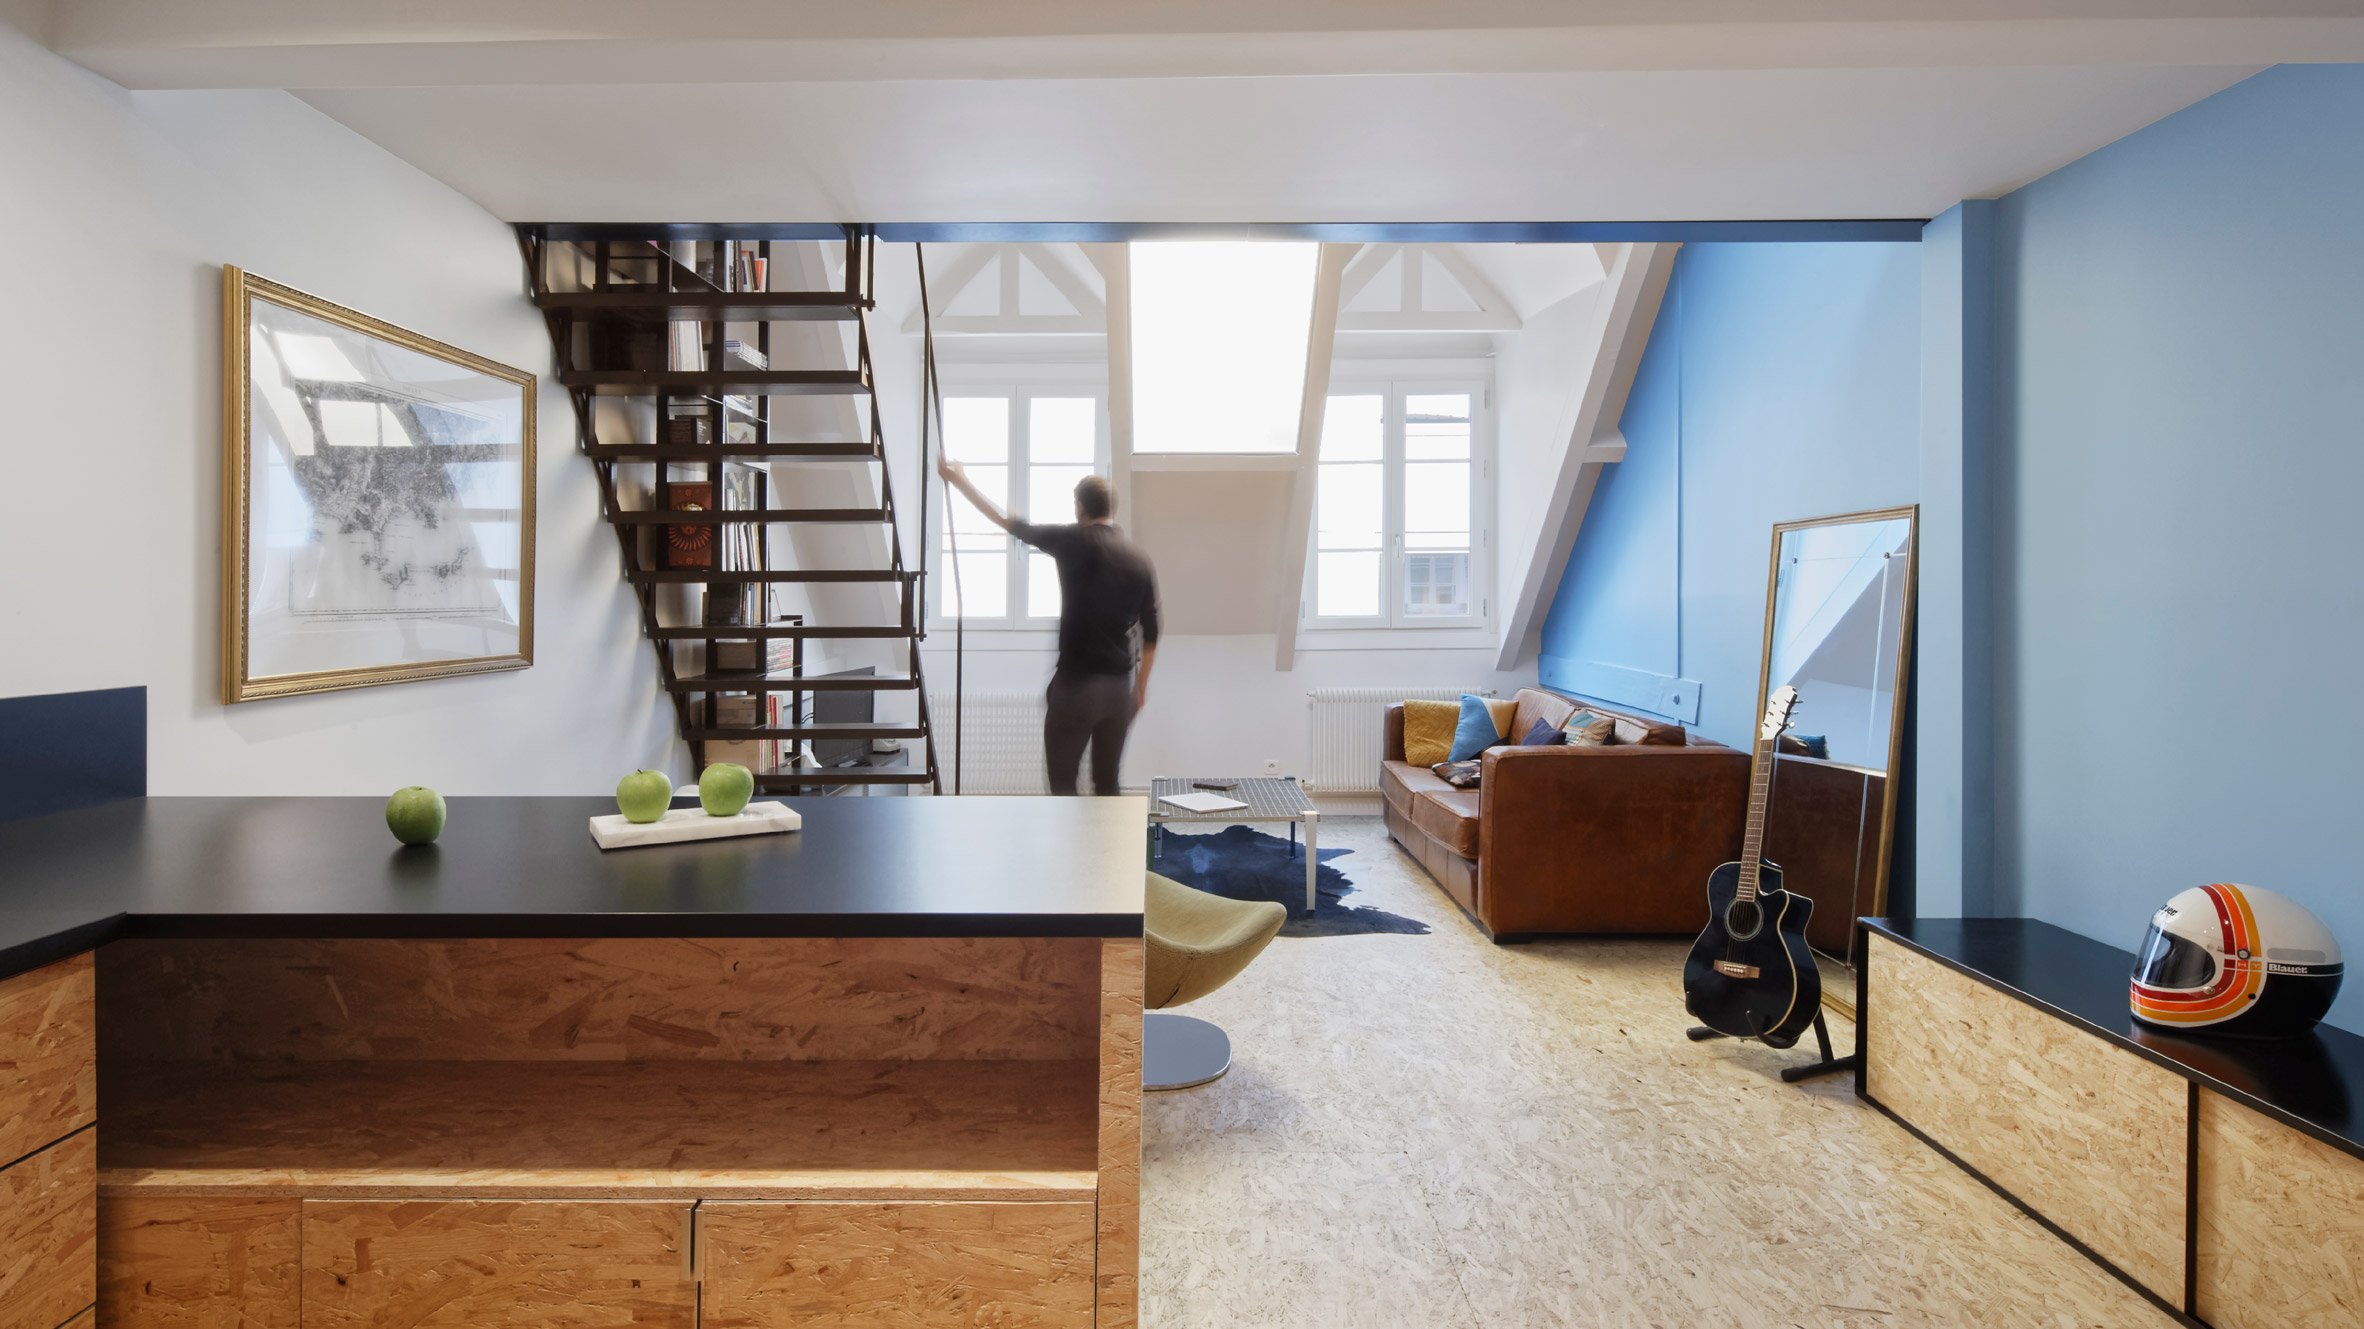 Attic Flat Revamped By Florent Chagny Architecture With Industrial Materials